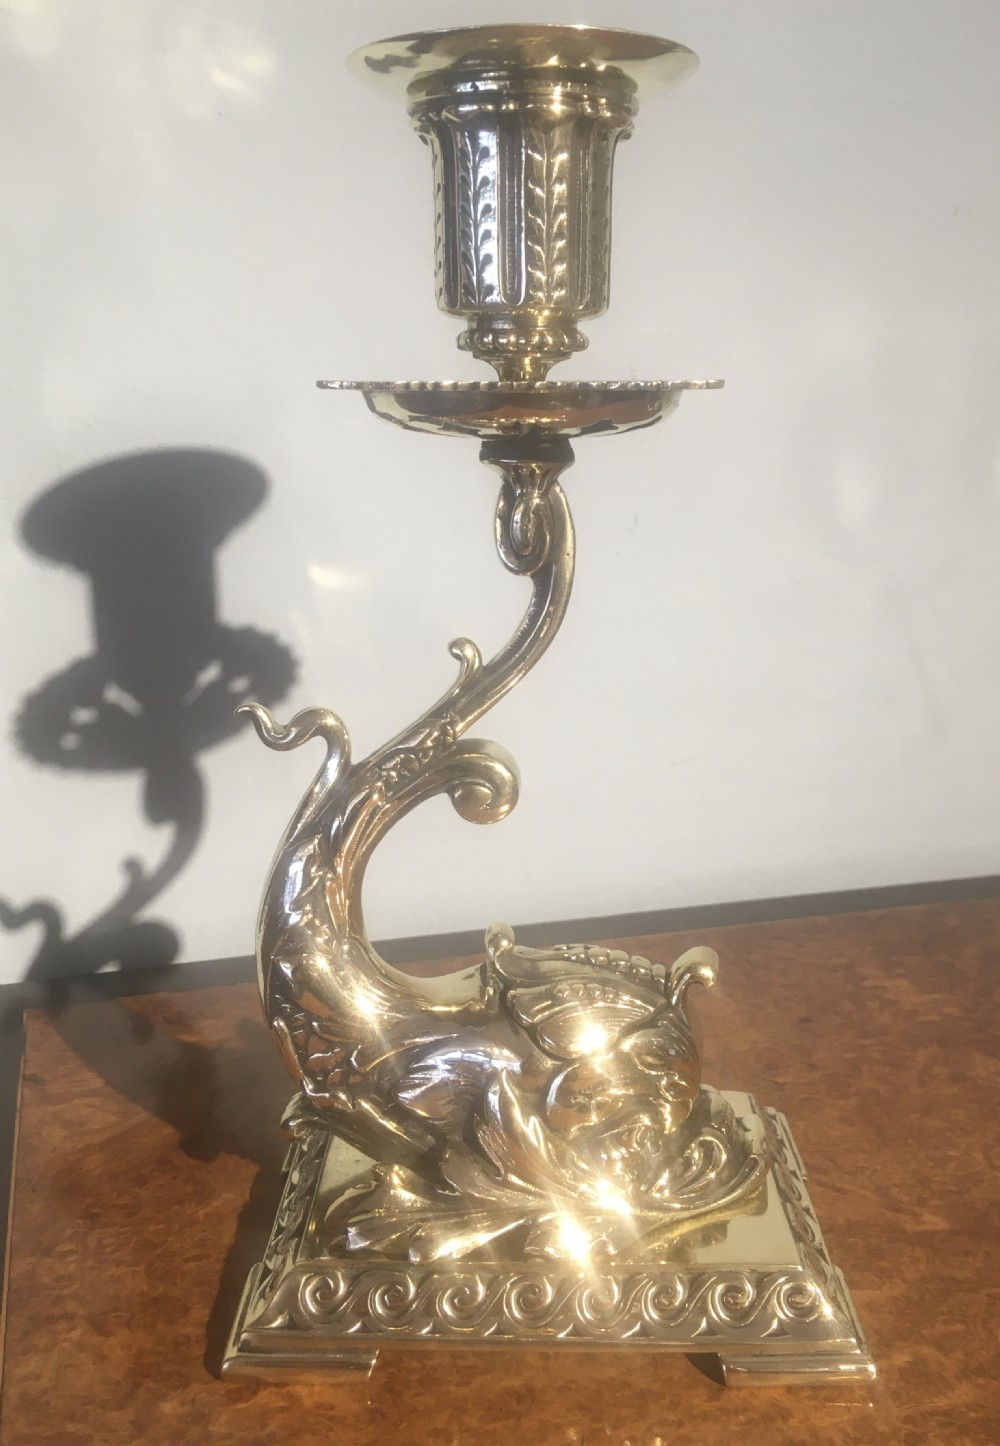 brass figural candlestick with ink well